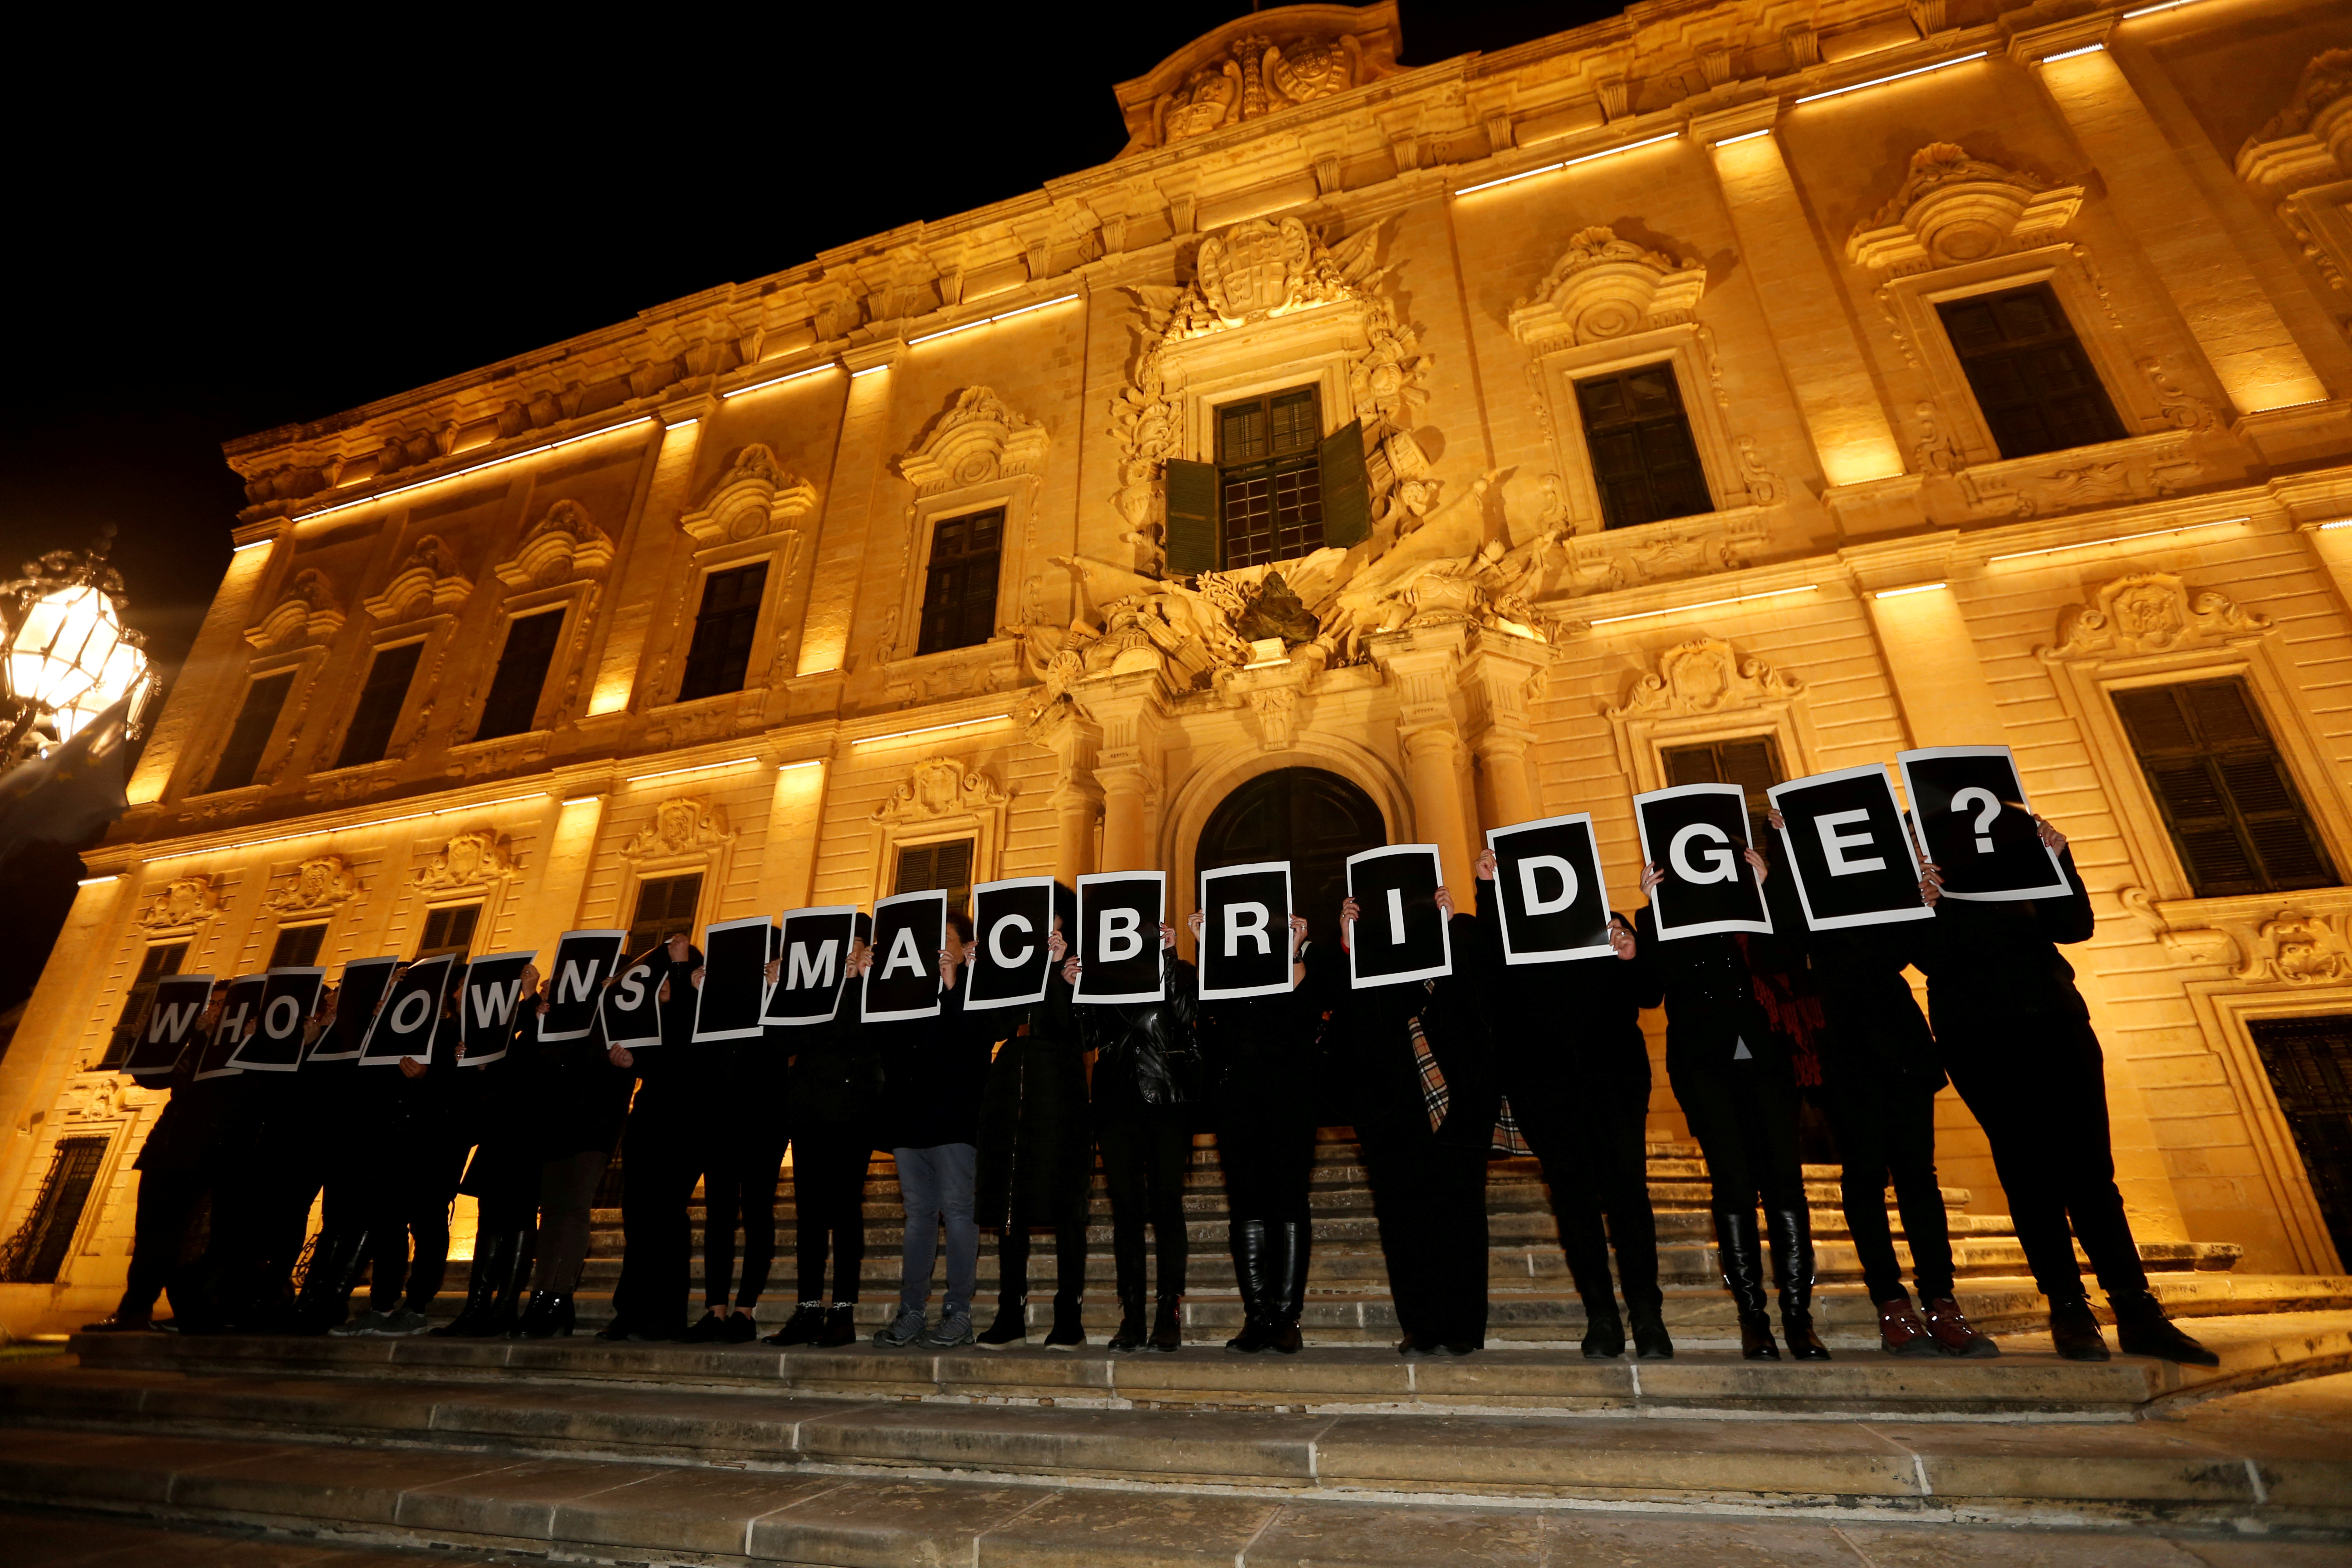 Activists from Occupy Justice Malta hold up placards reading